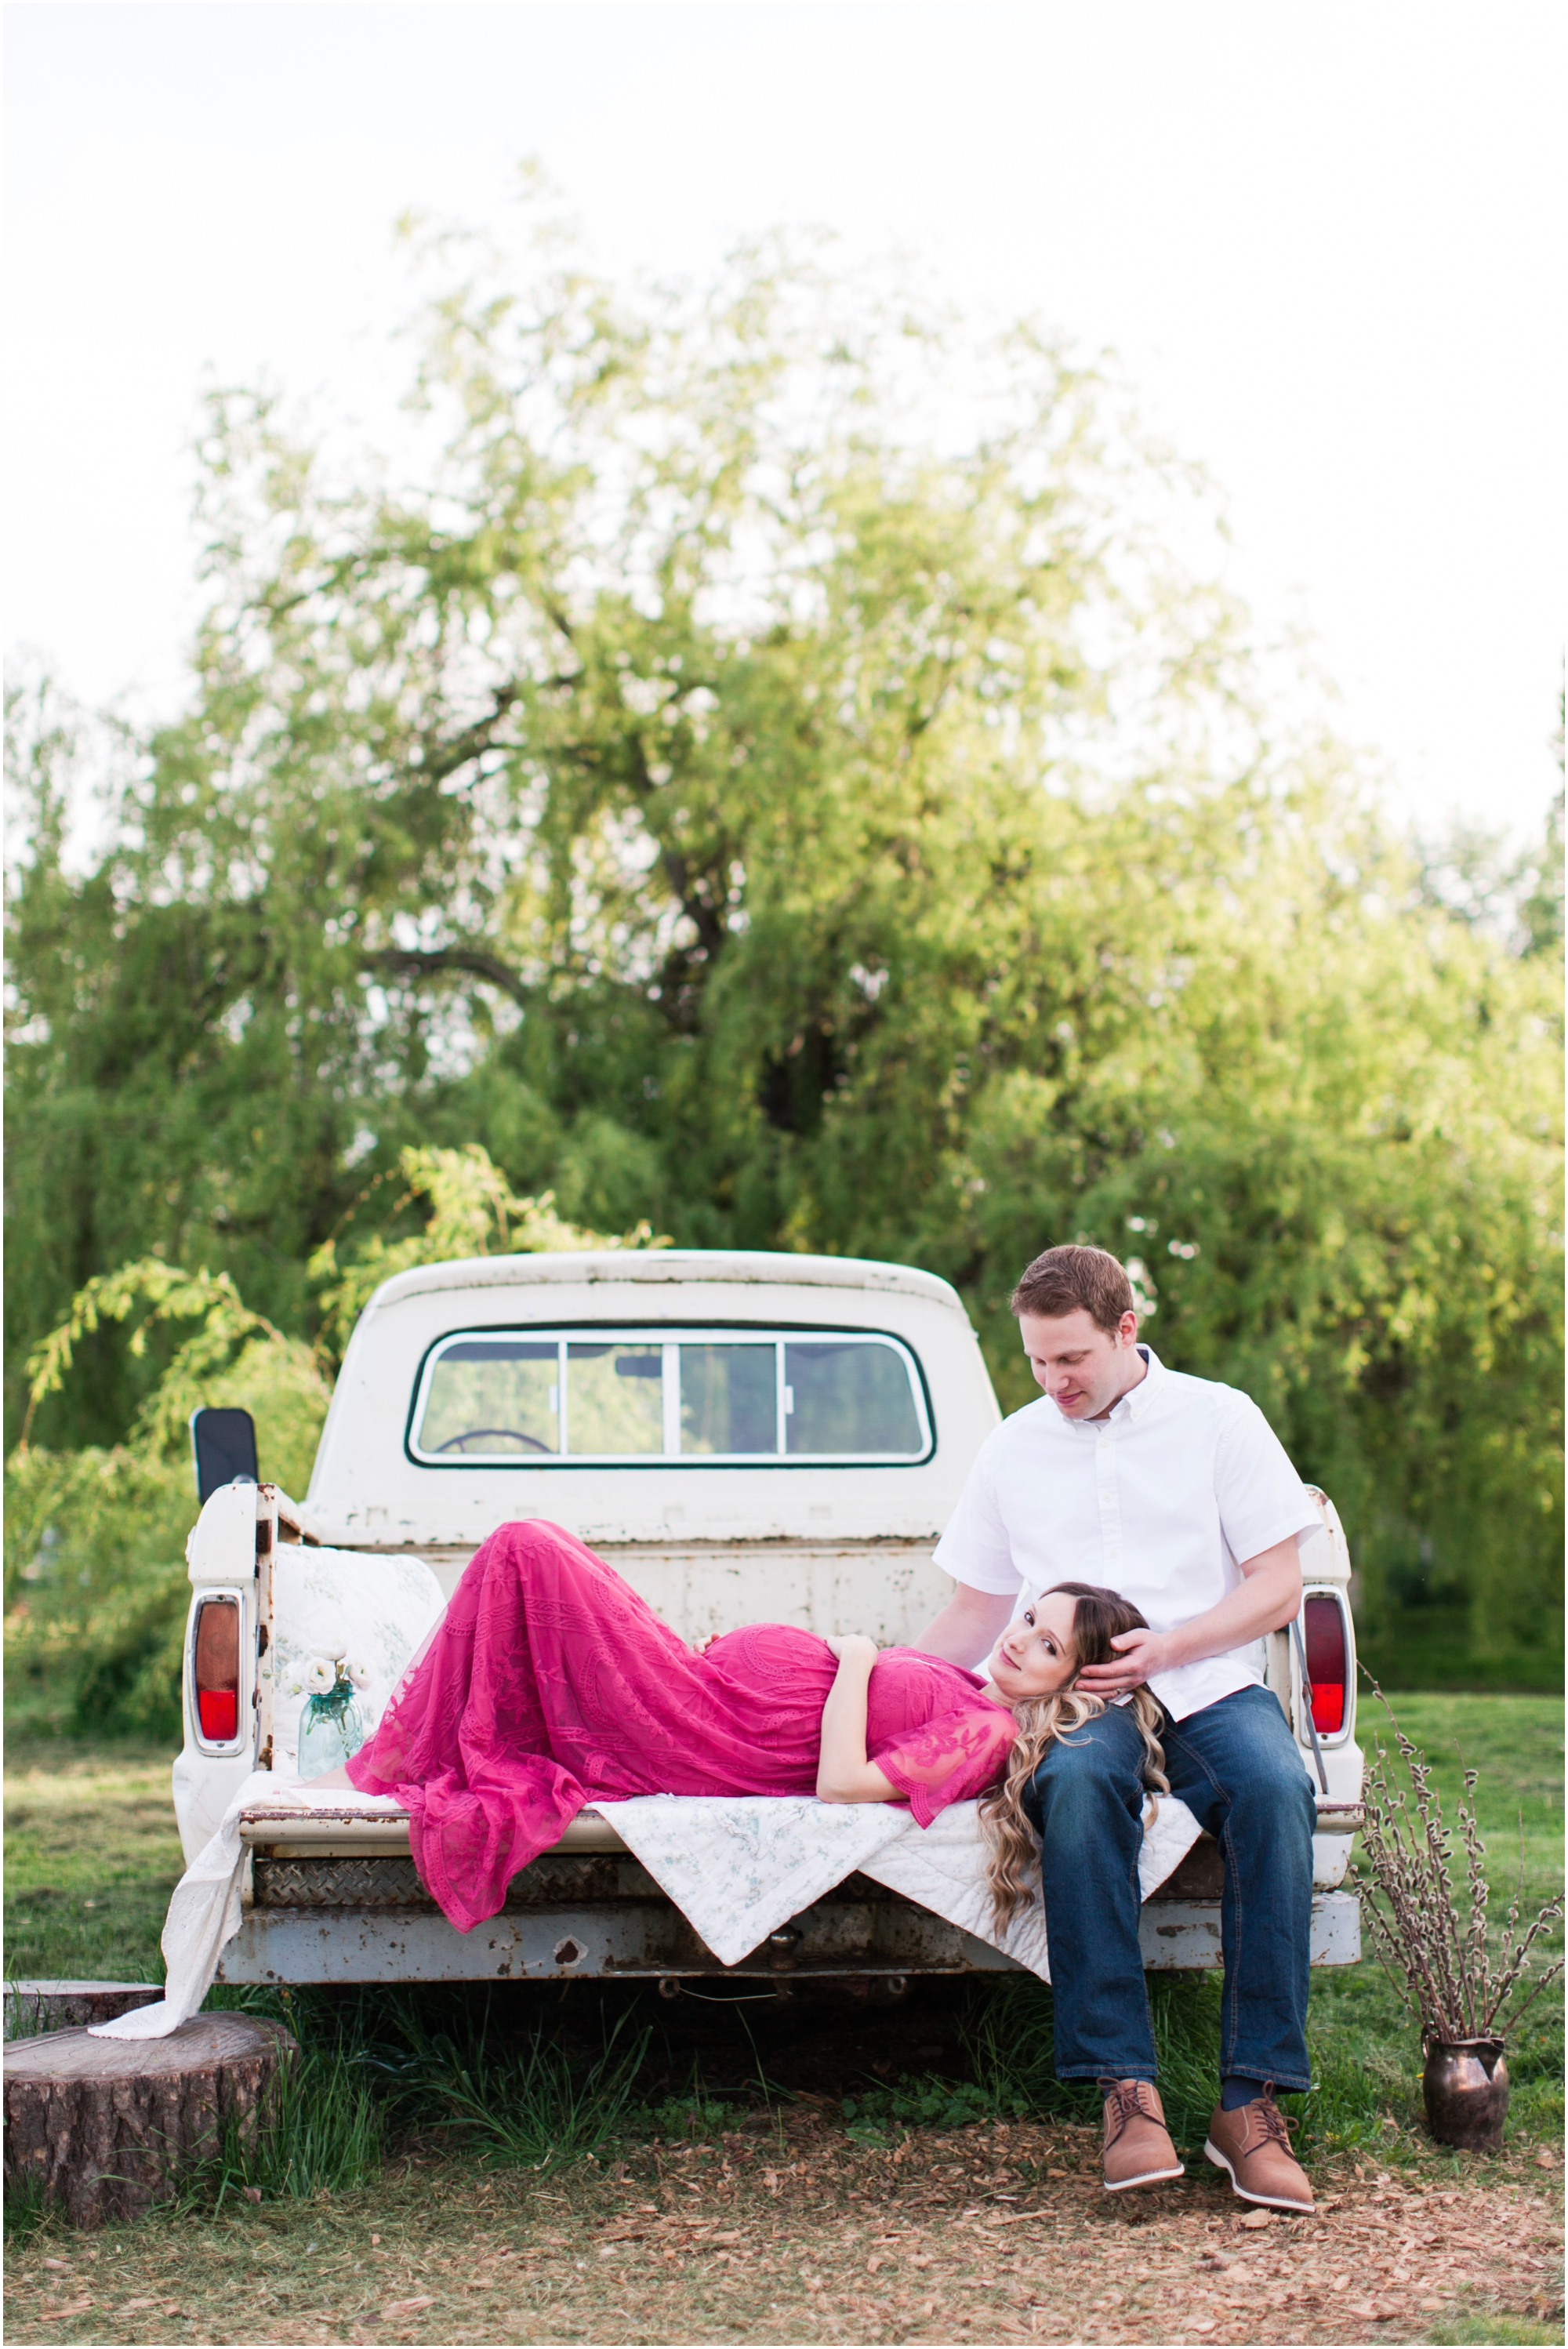 Wild Hearts Farm maternity shoot in Tacoma. Photos by Briana Calderon Photography based in the greater Seattle Tacoma Area._1205.jpg